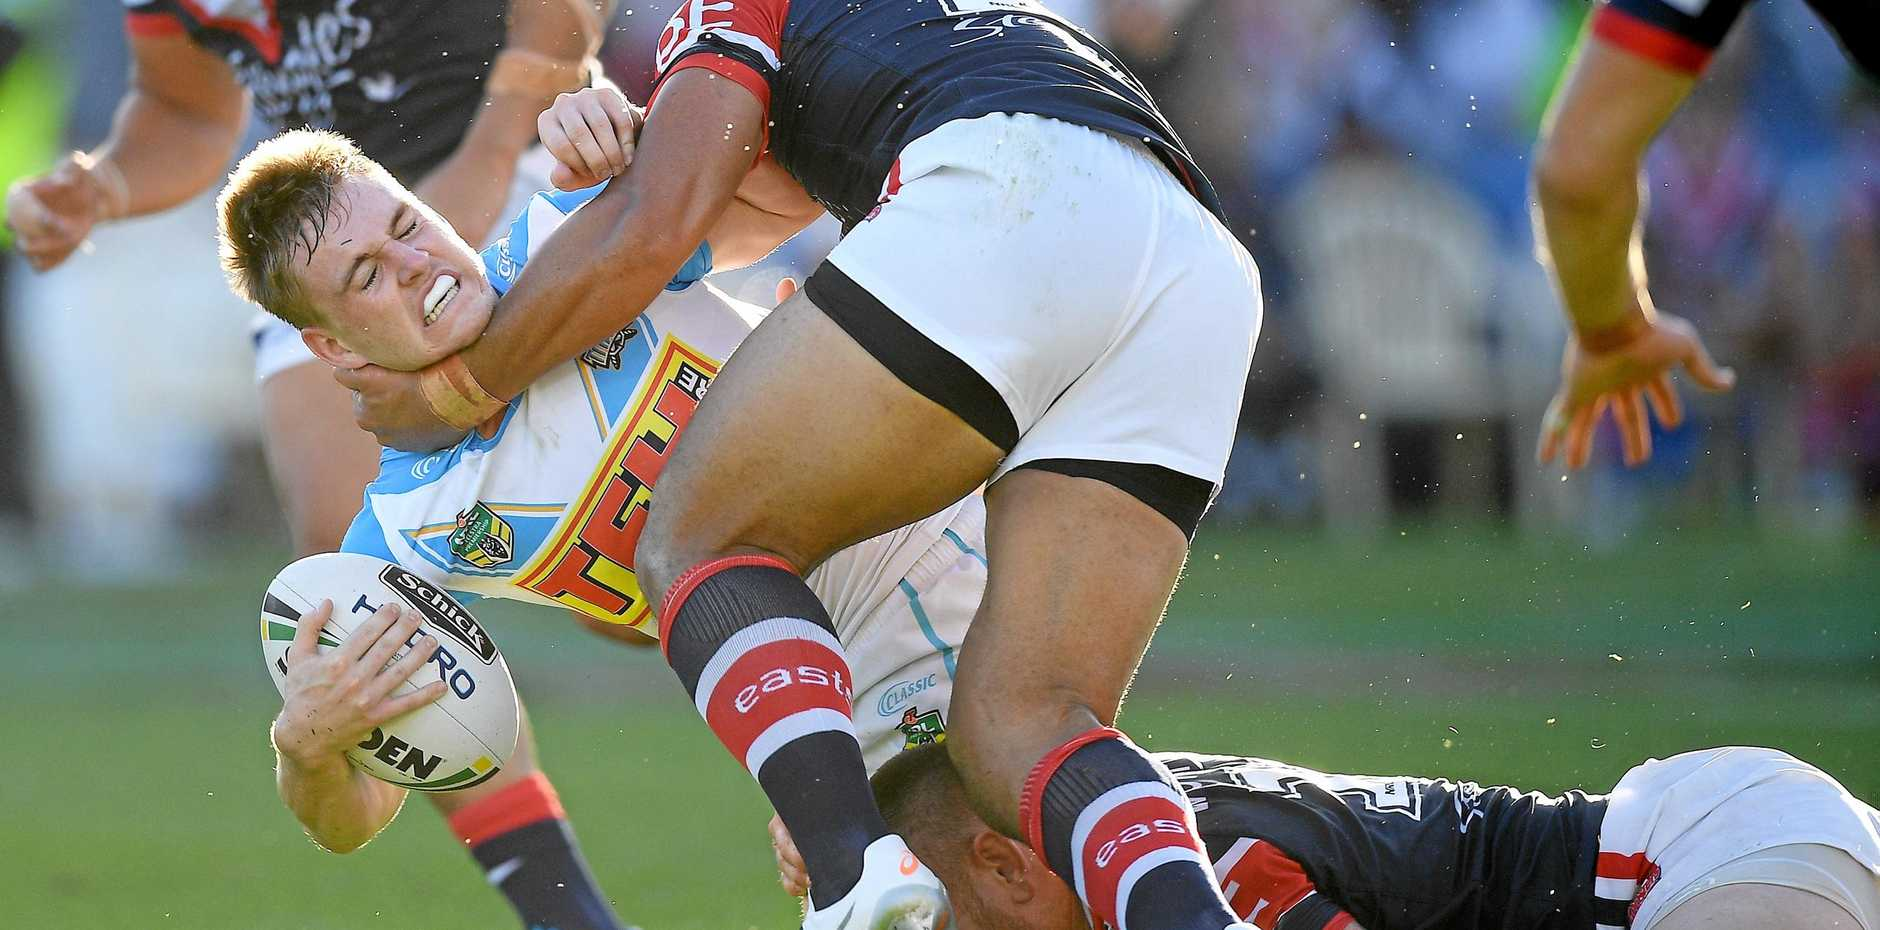 The Titans' AJ Brimson is tackled by the Roosters' Isaac Liu and Jared Waerea-Hargreaves in Gosford on May 26 last year.  Picture: Dan Himbrechts/AAP